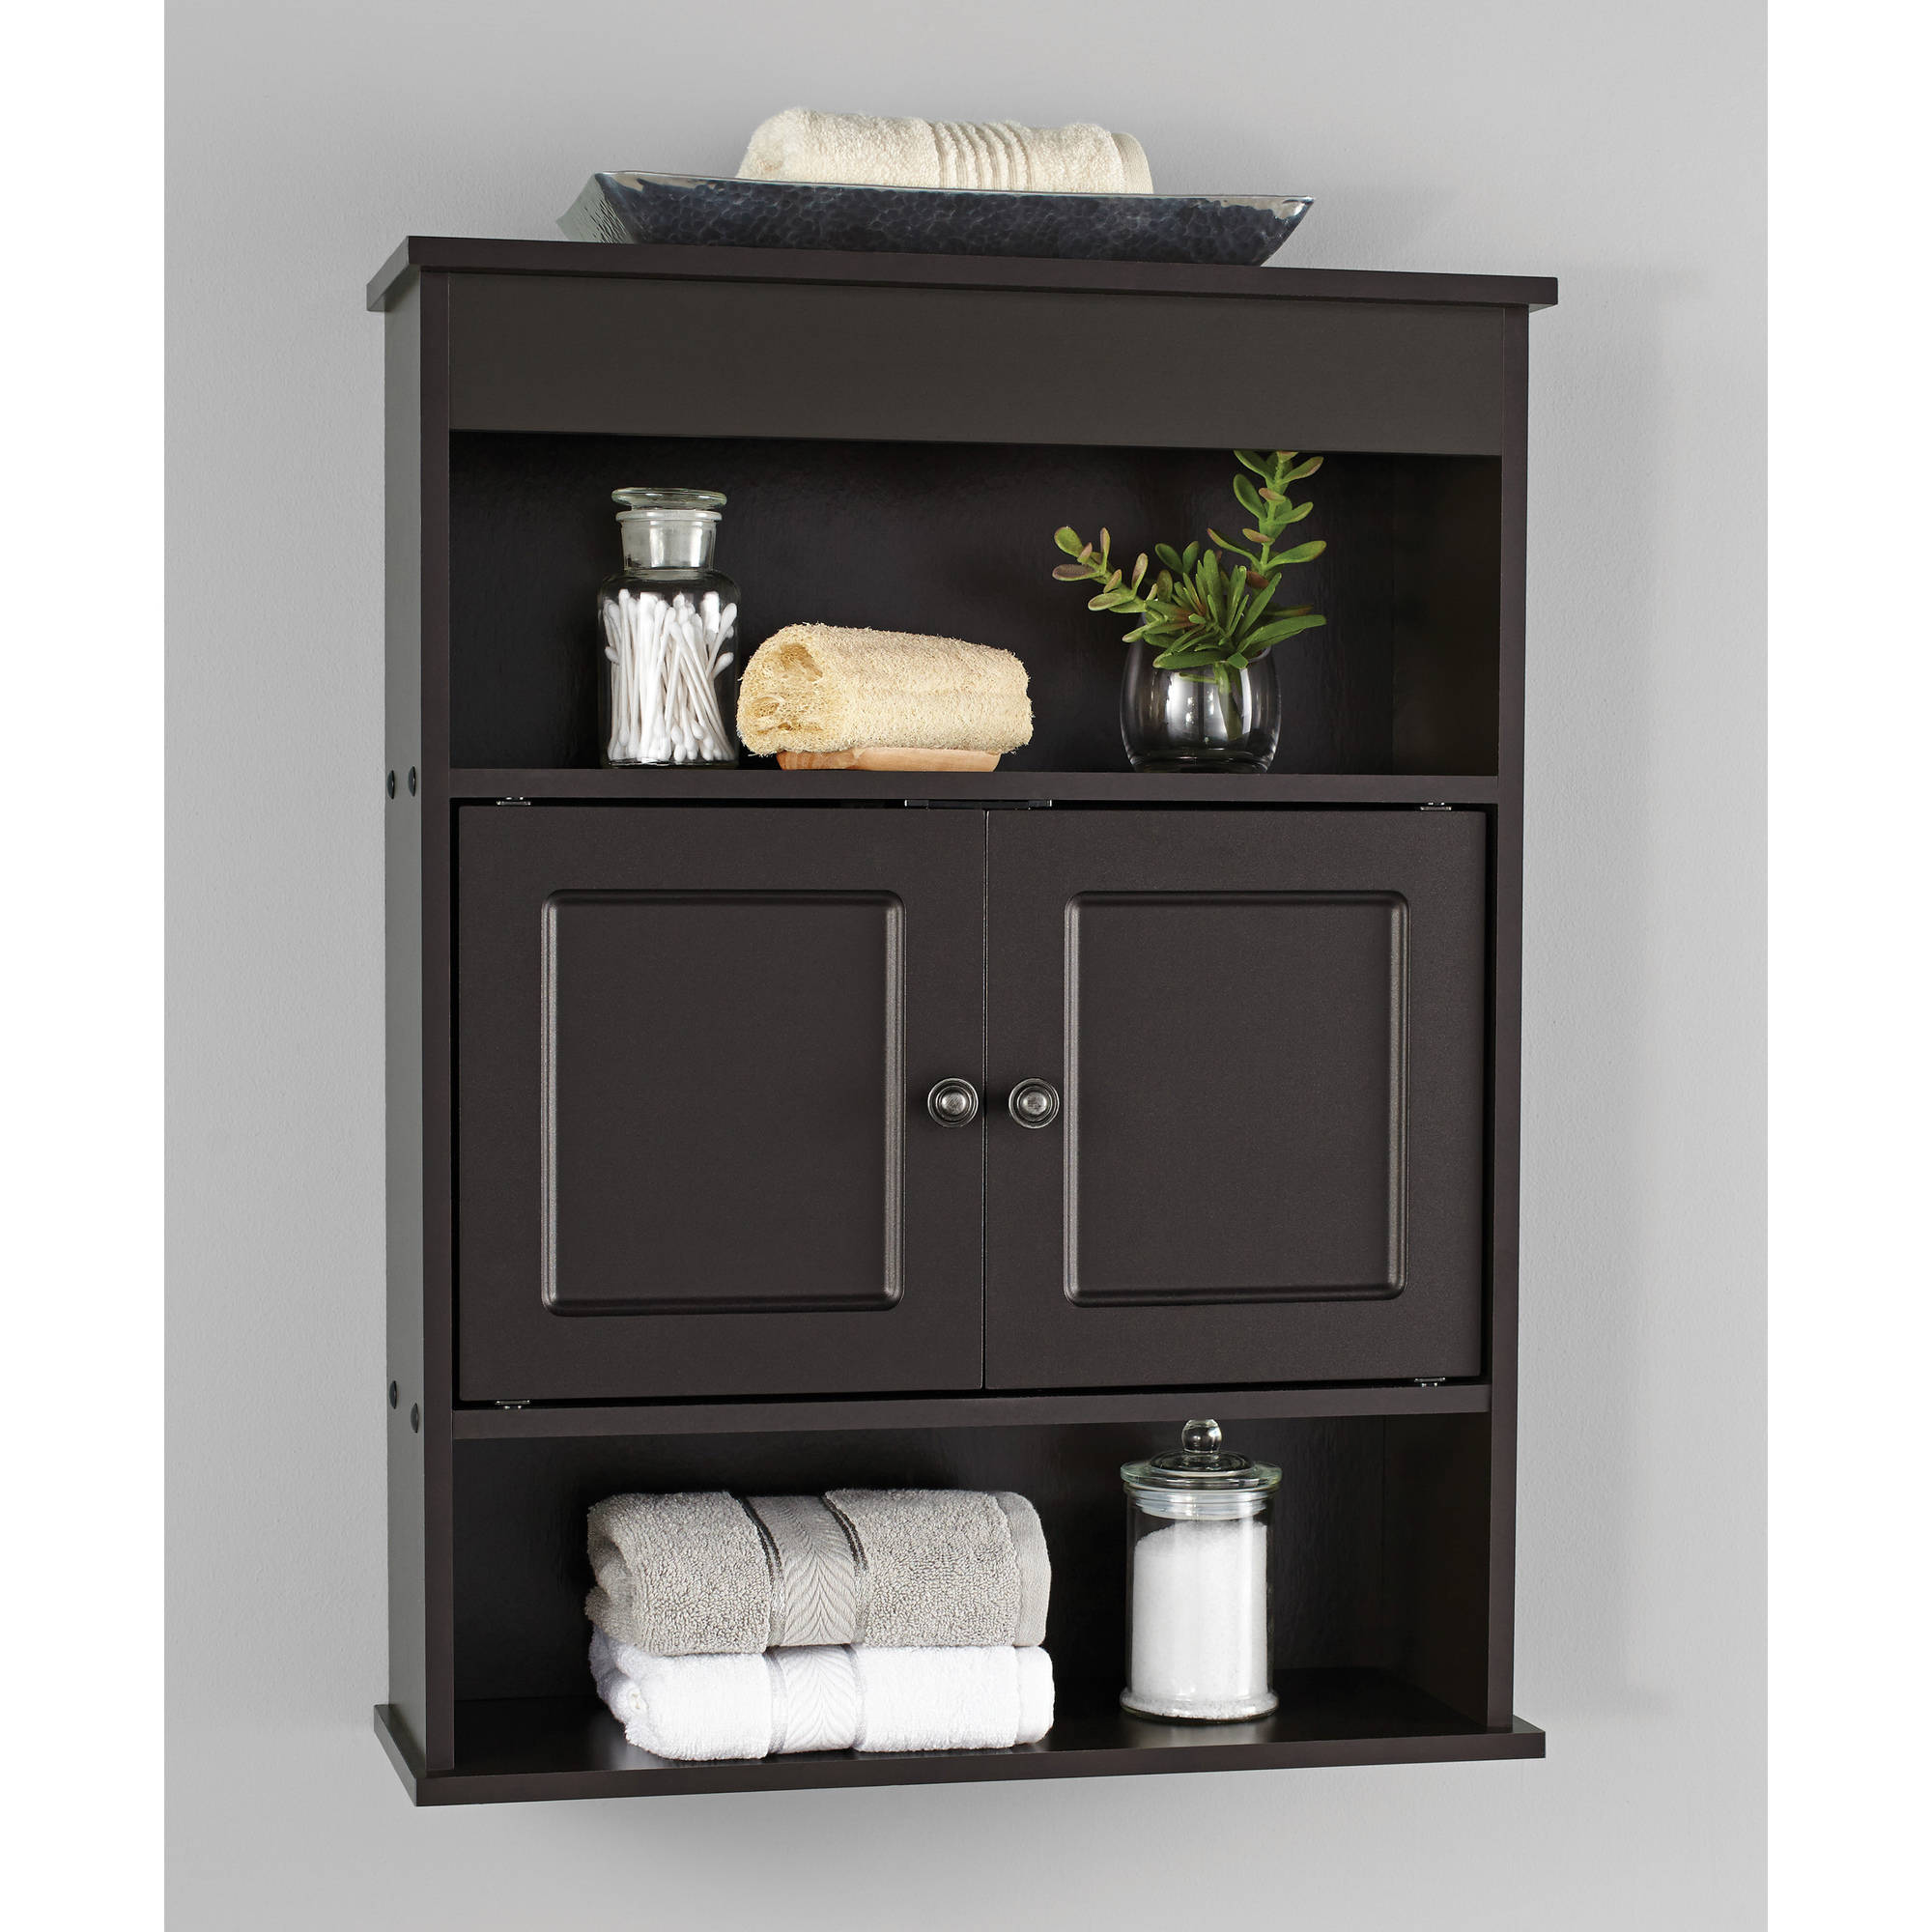 bathroom cabinet with shelf chapter bathroom wall cabinet storage shelf espresso ebay 15604